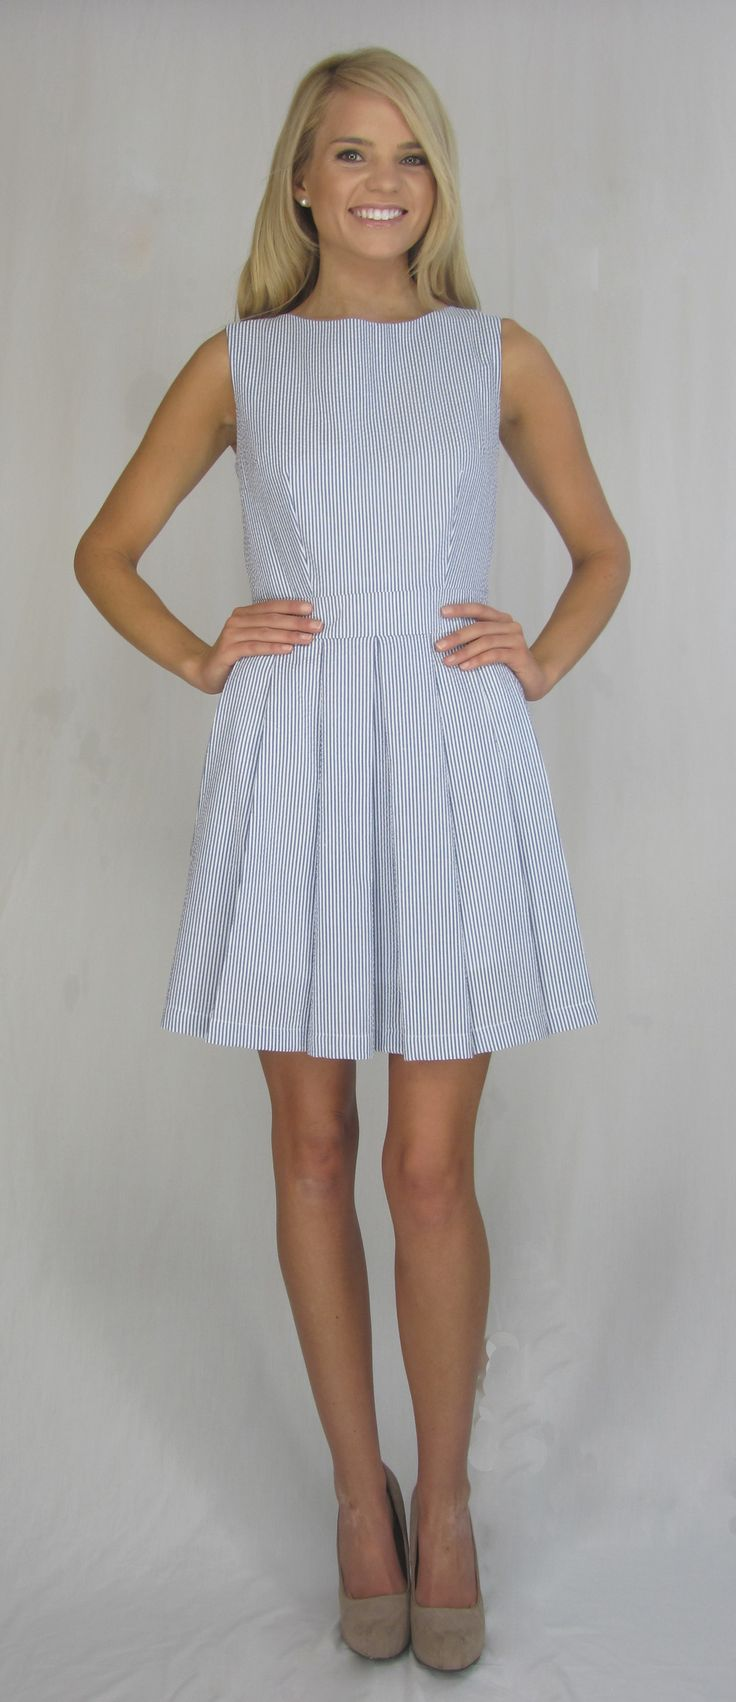 Pleated blue seersucker dress.